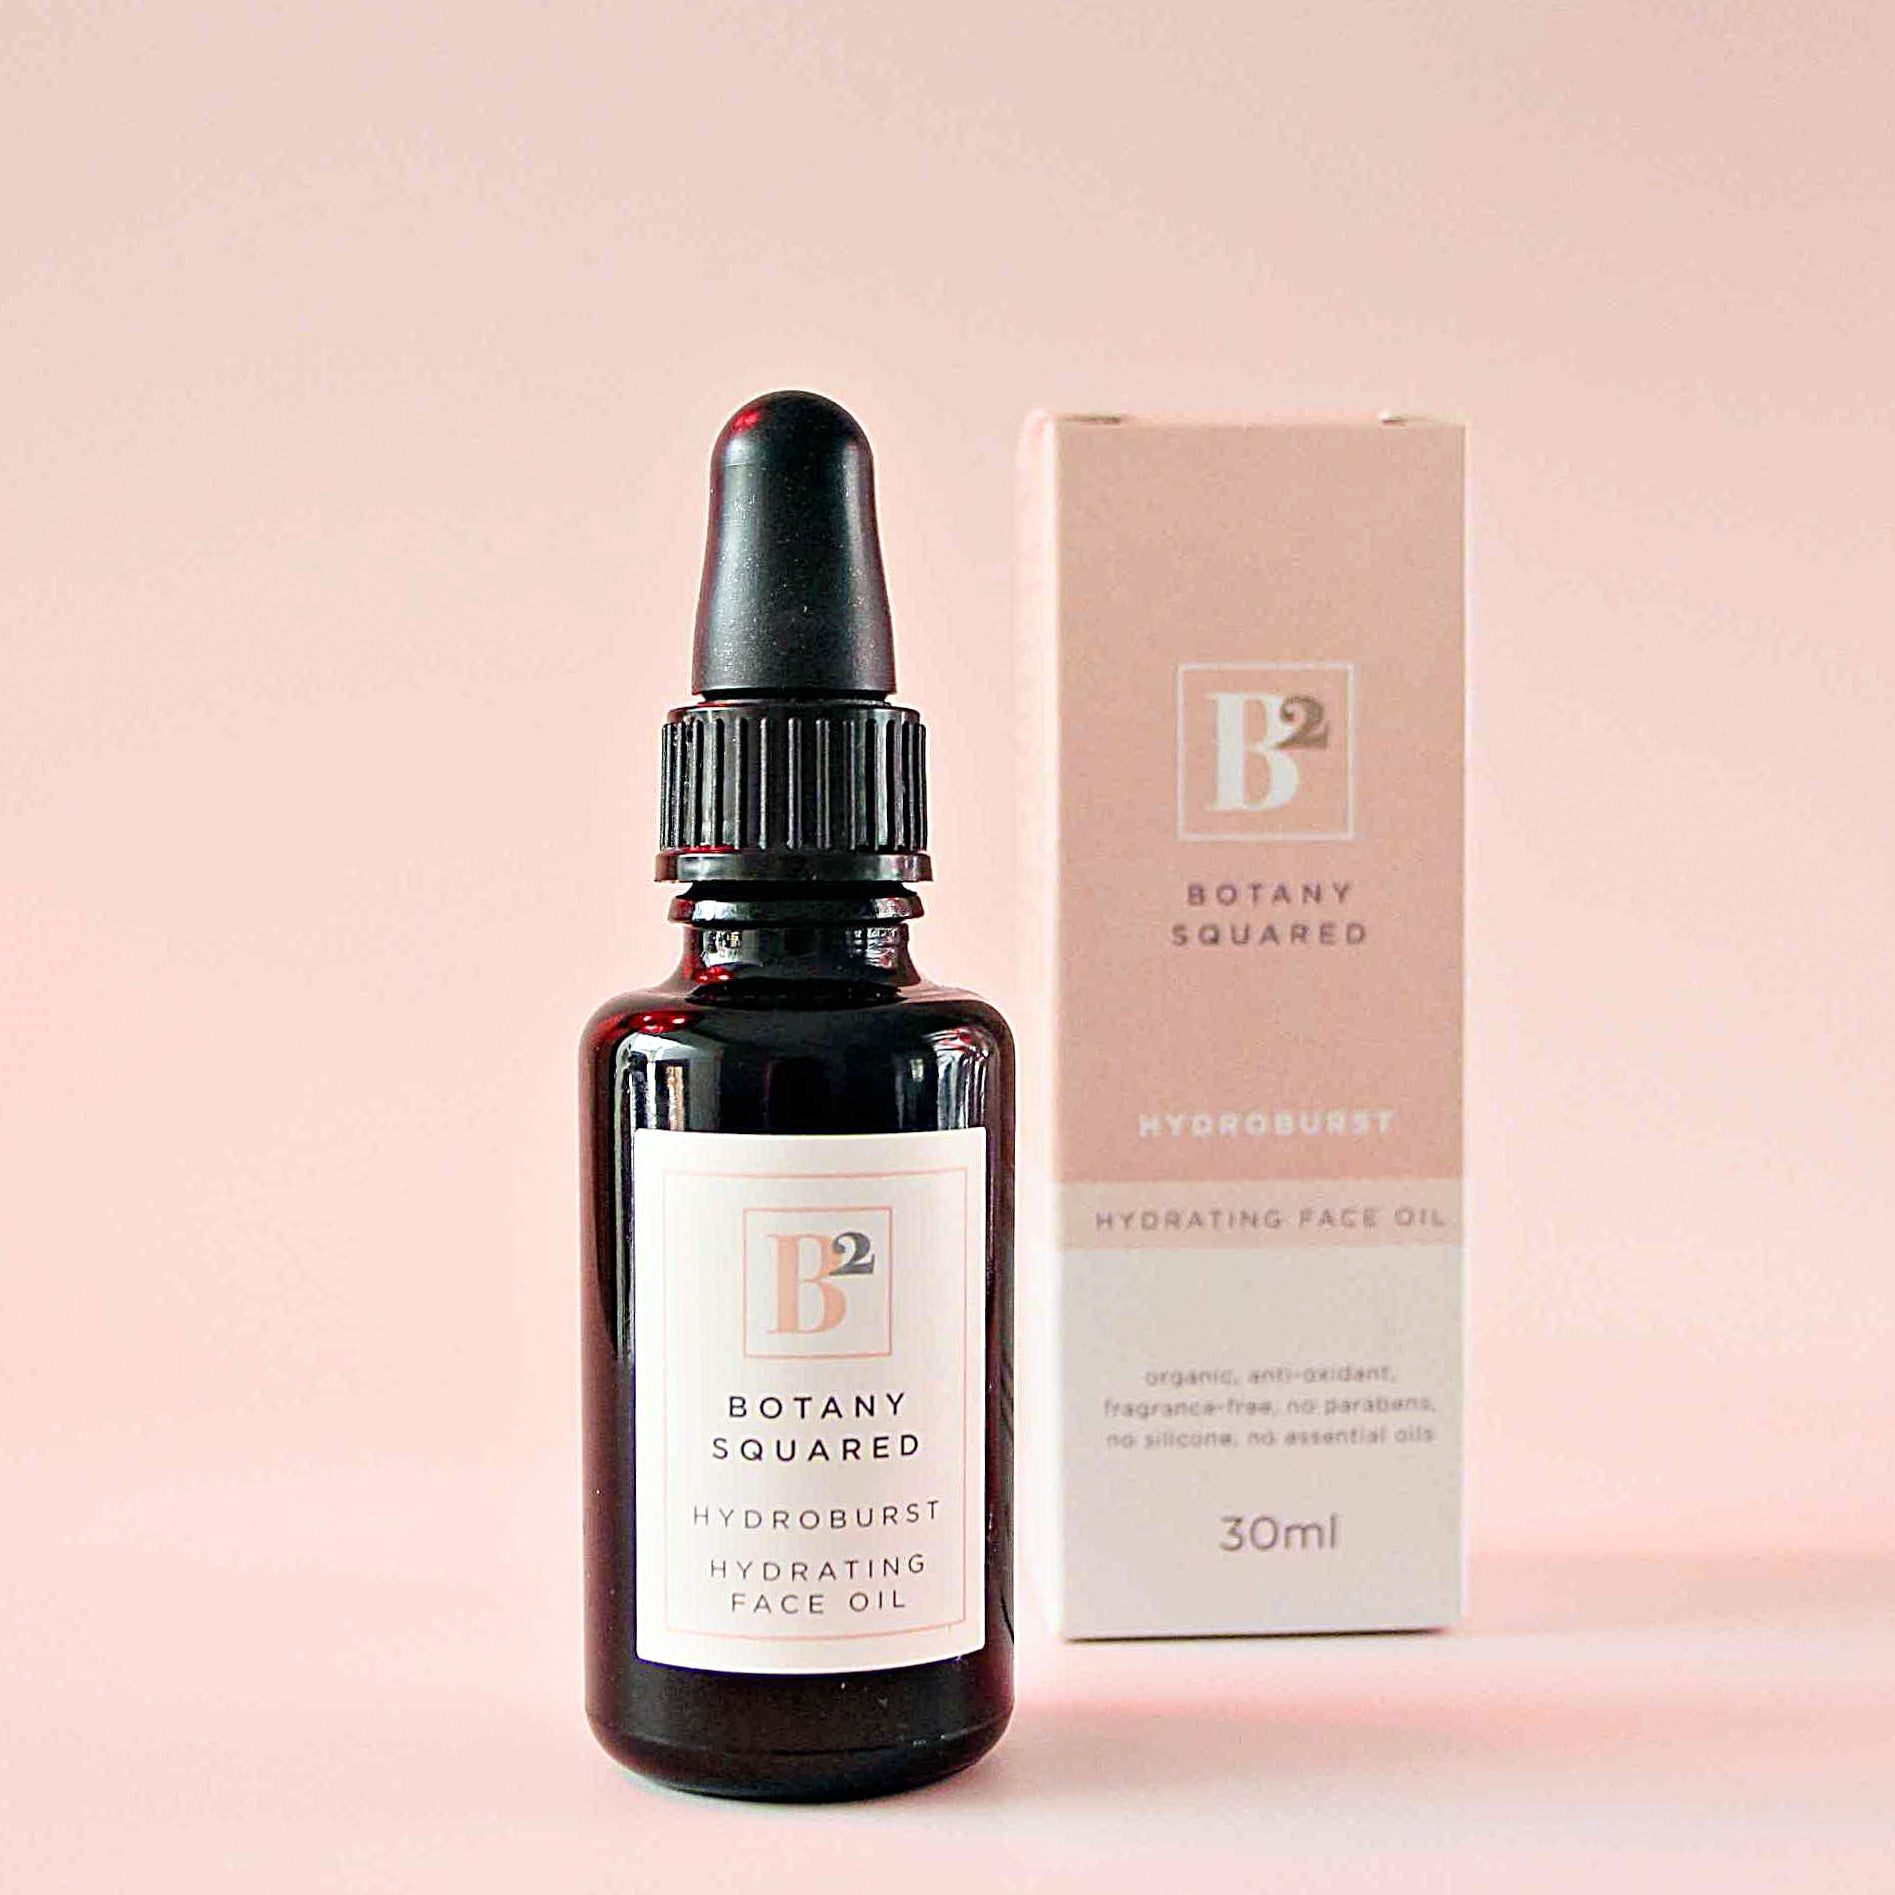 Hydroburst Hydrating Face Oil - BOTANY SQUARED